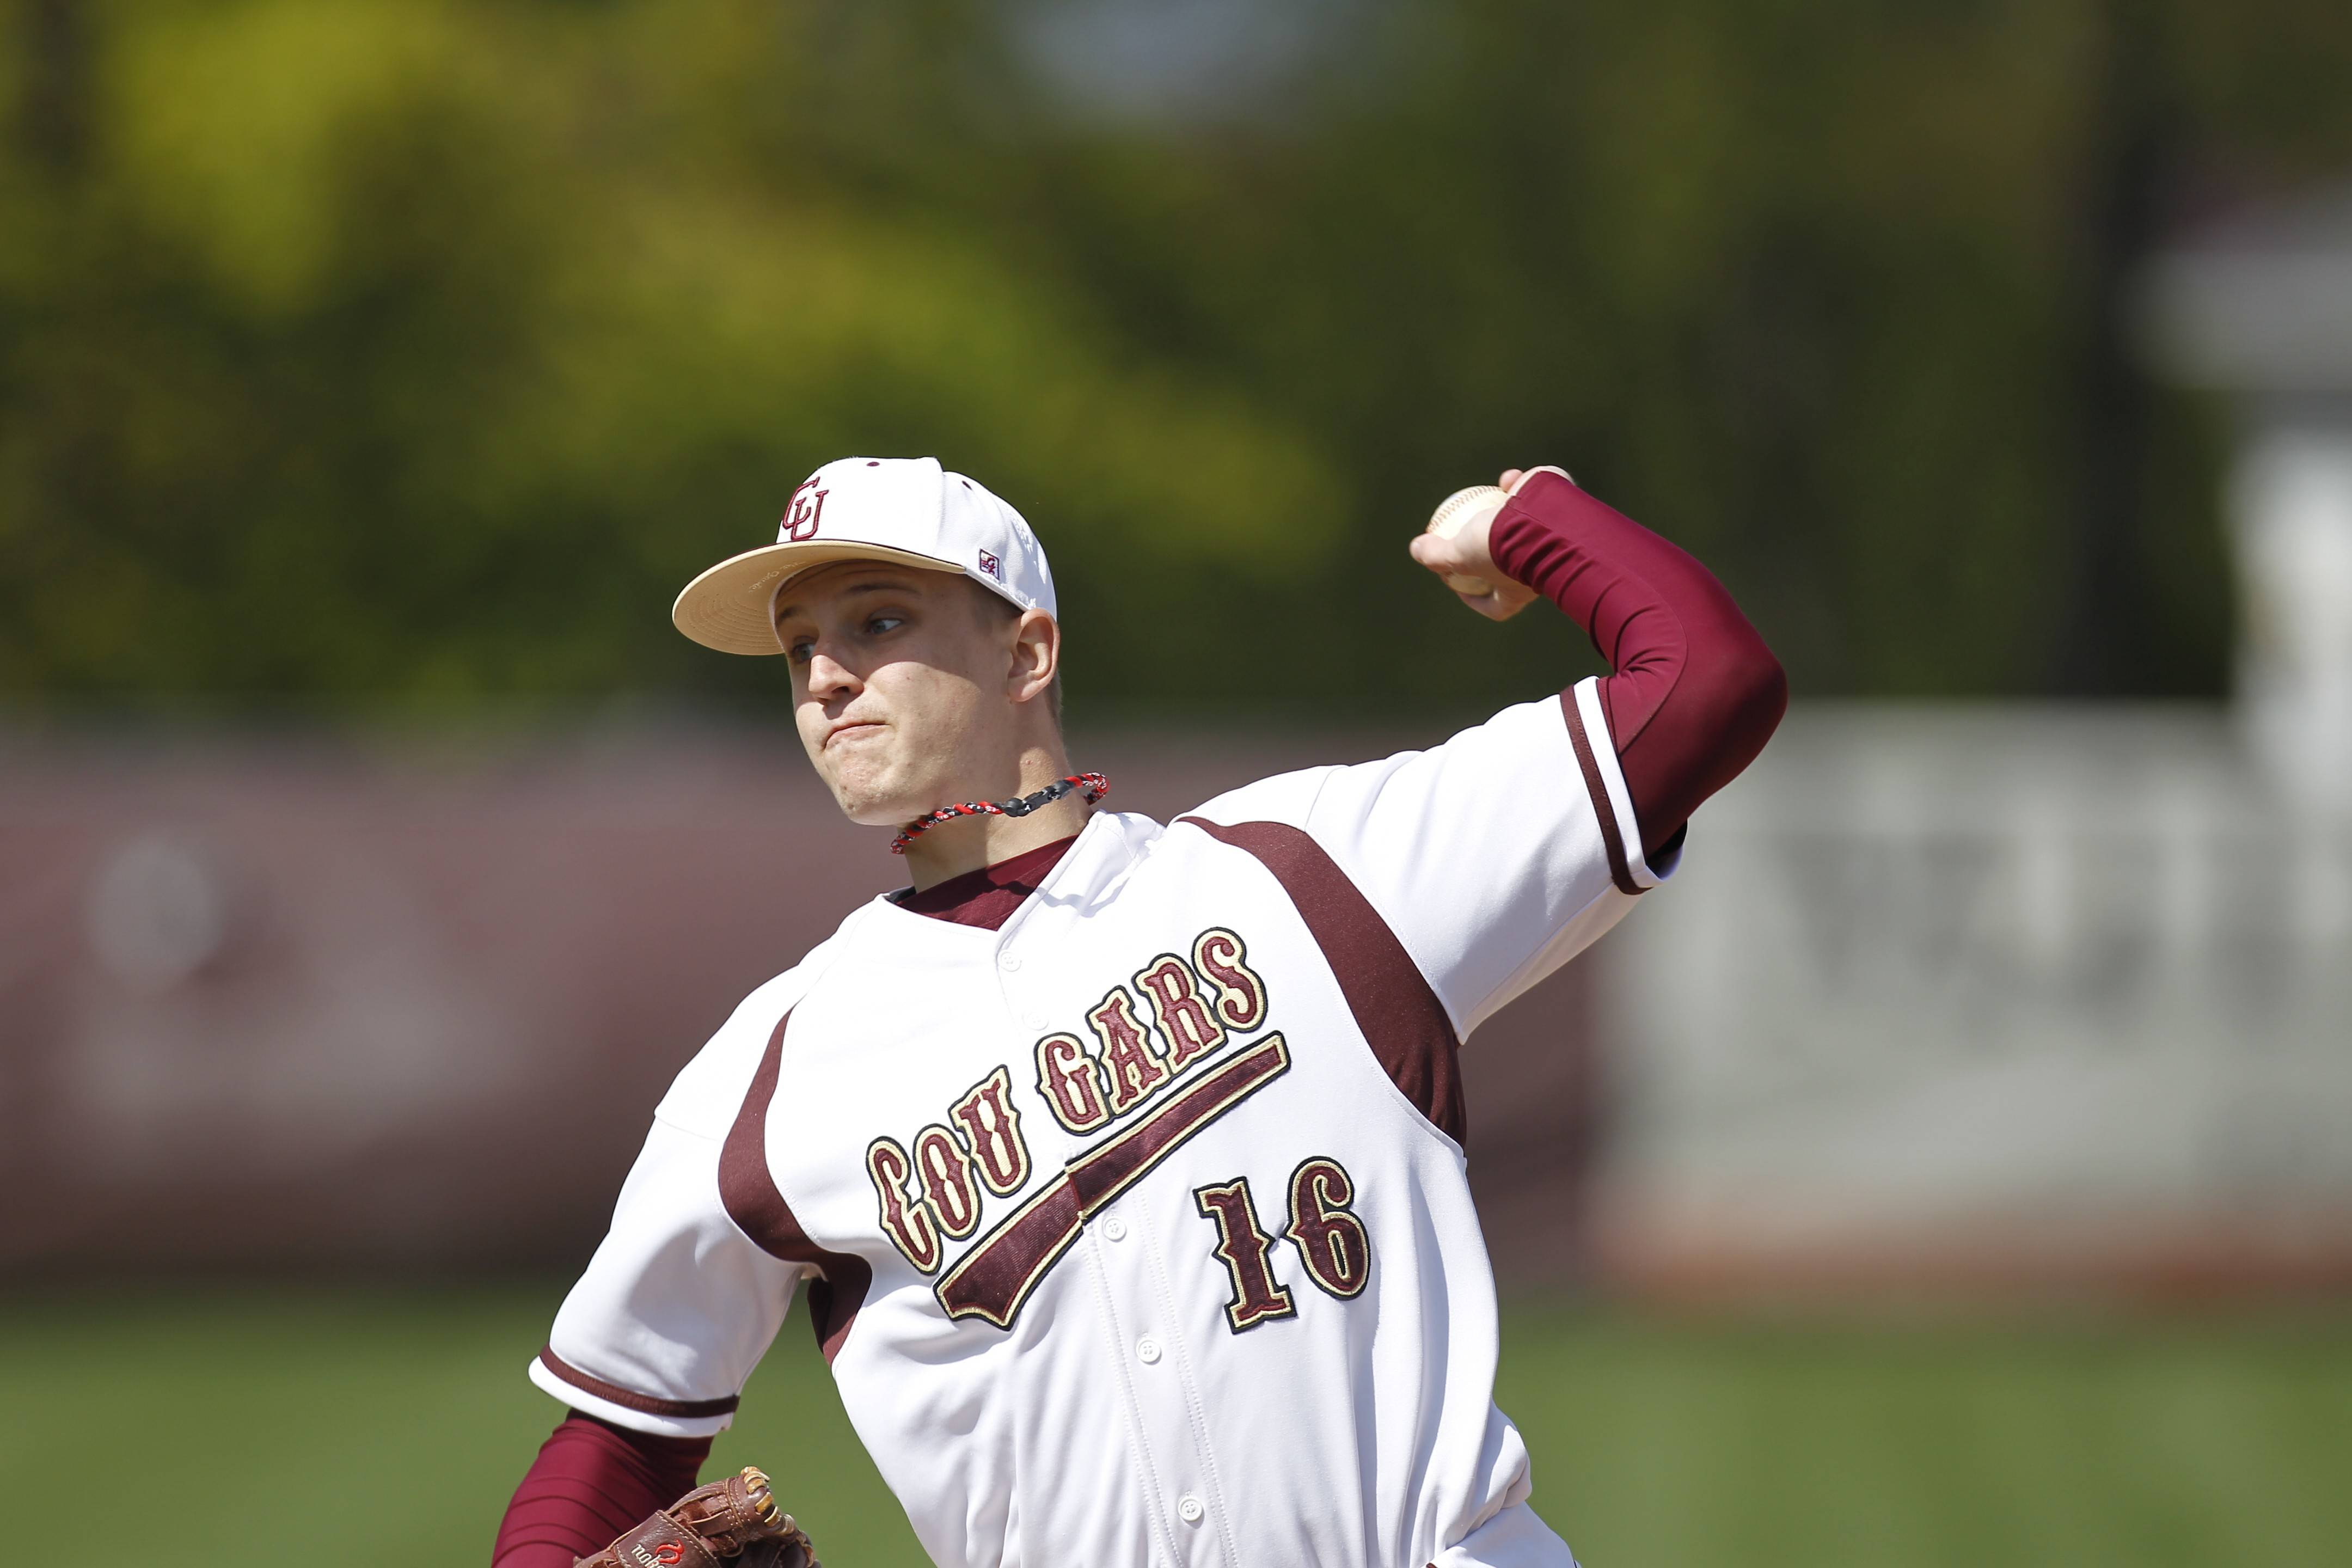 Kurt Kempema delivers for Concordia in a recent game against Lakeland.